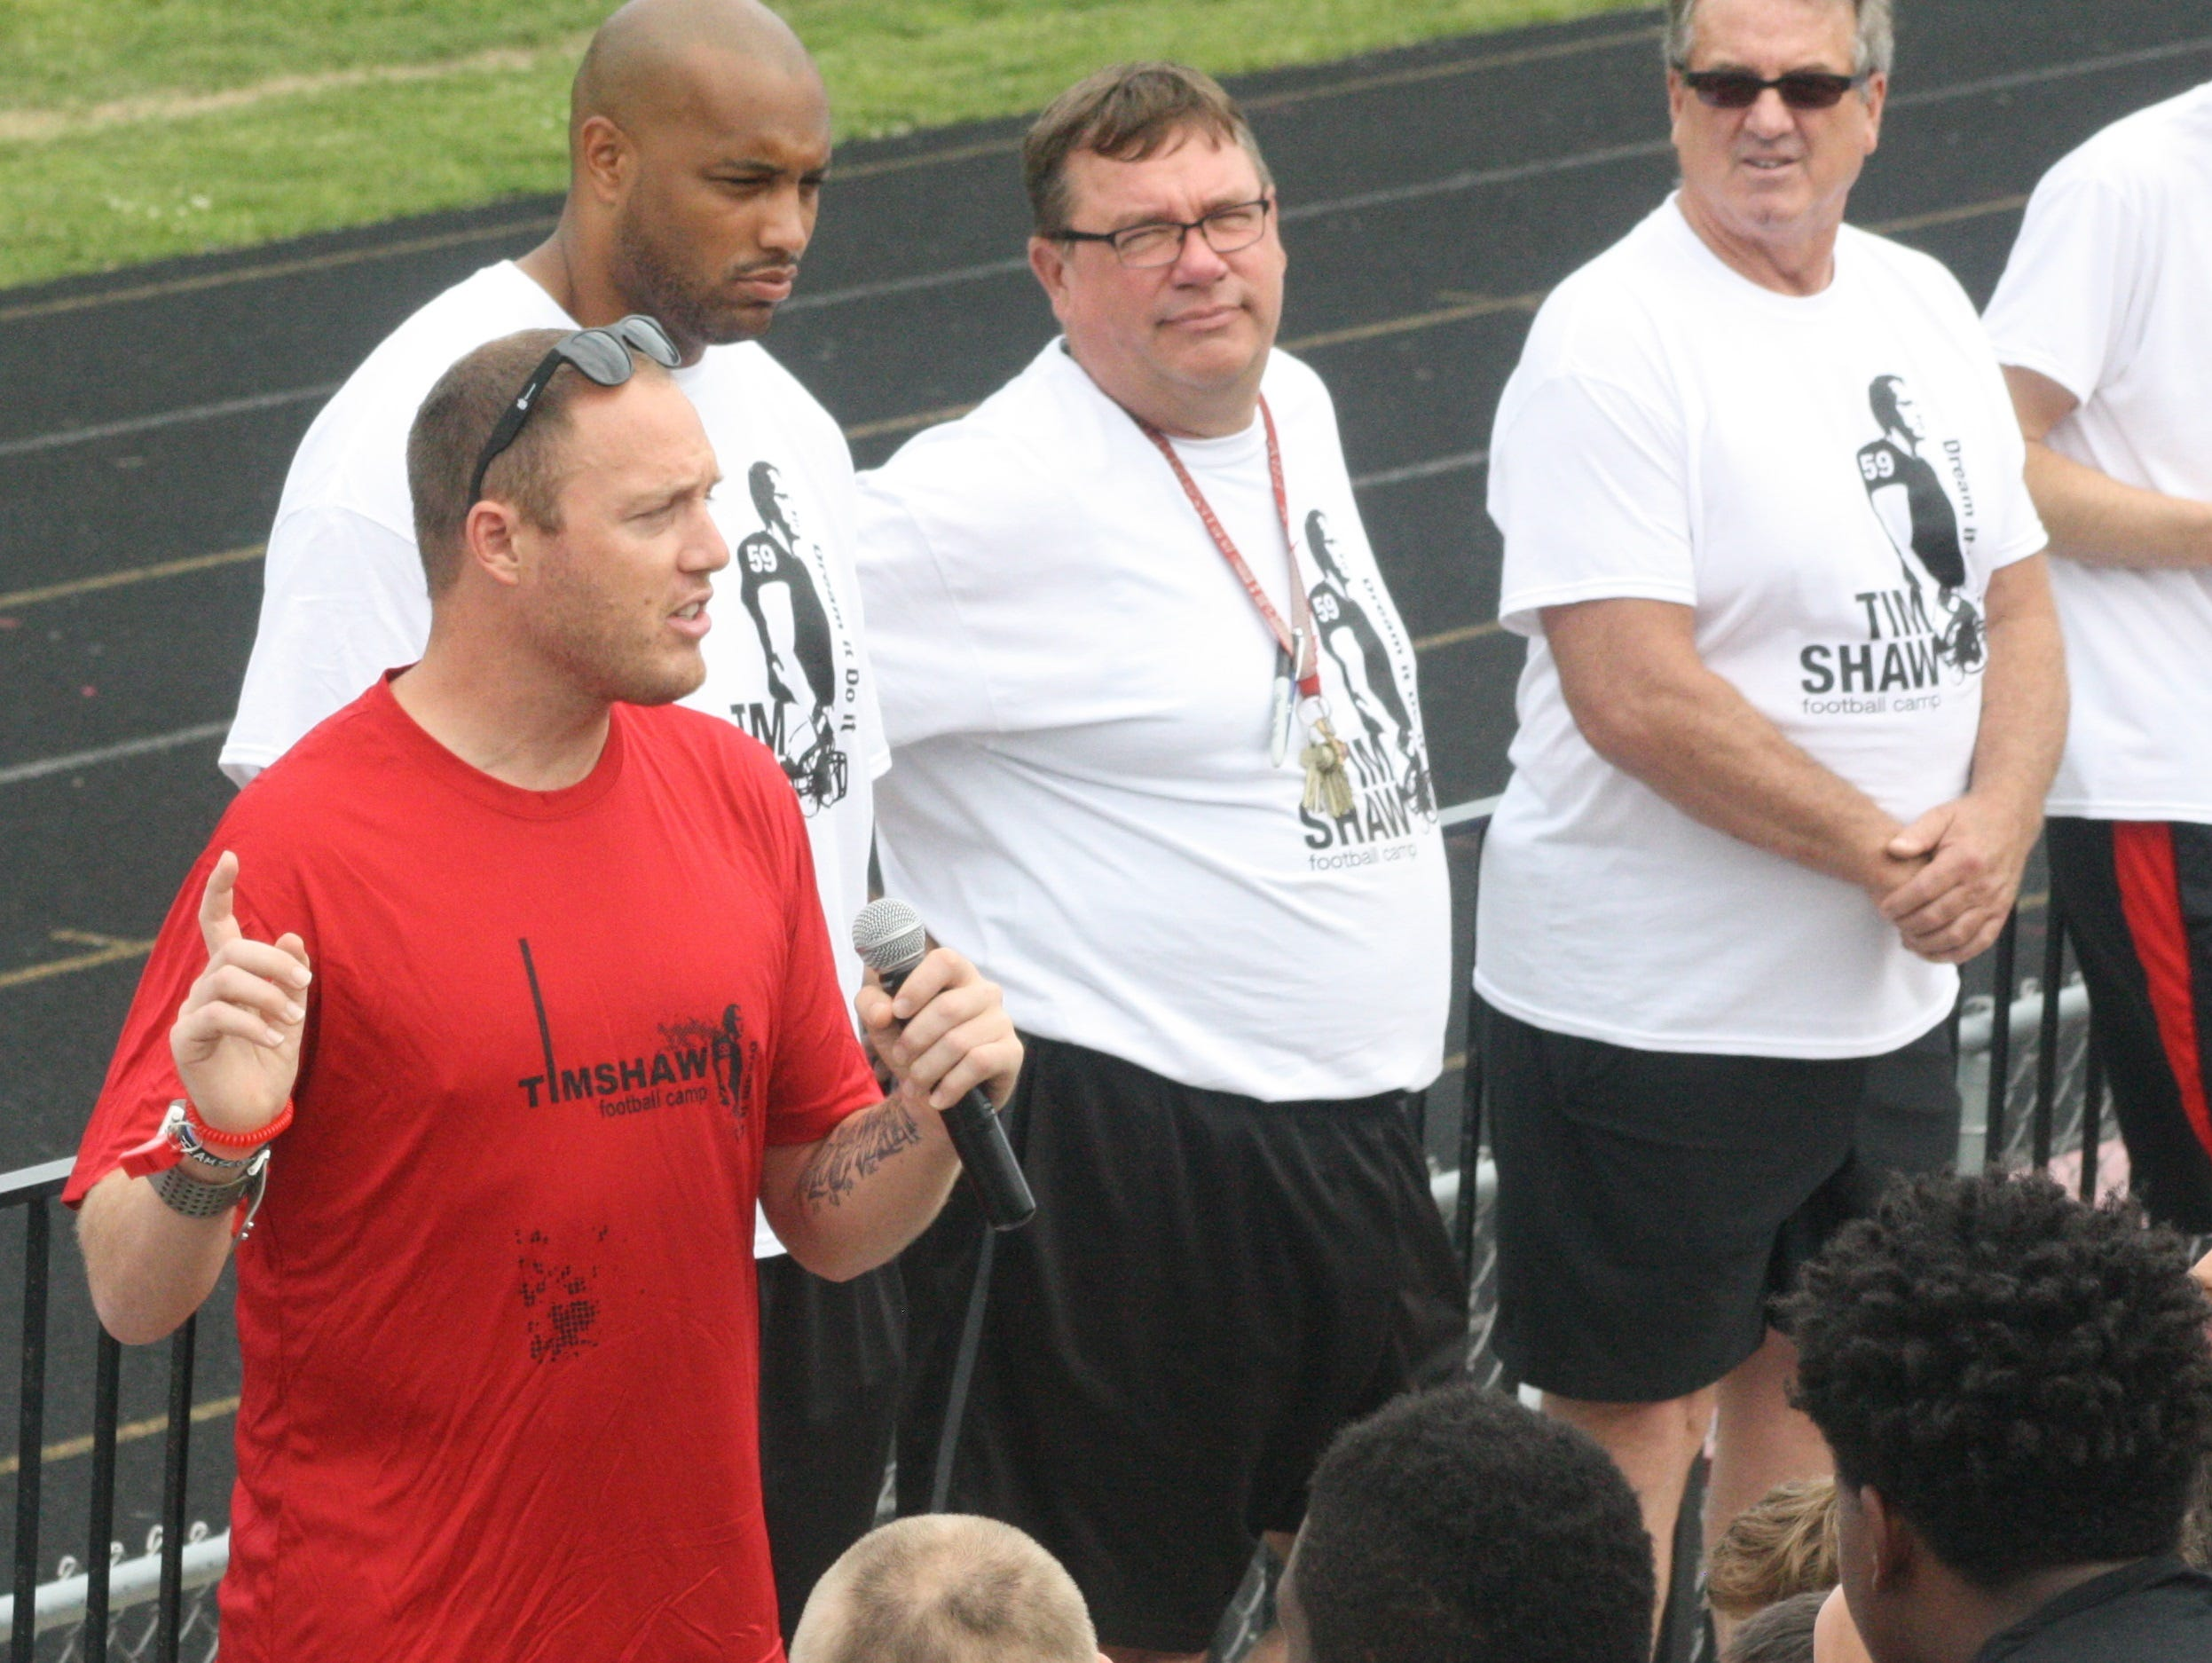 Tim Shaw delivered a stirring pep talk to the 200-plus participants at his sixth annual football camp Friday night.